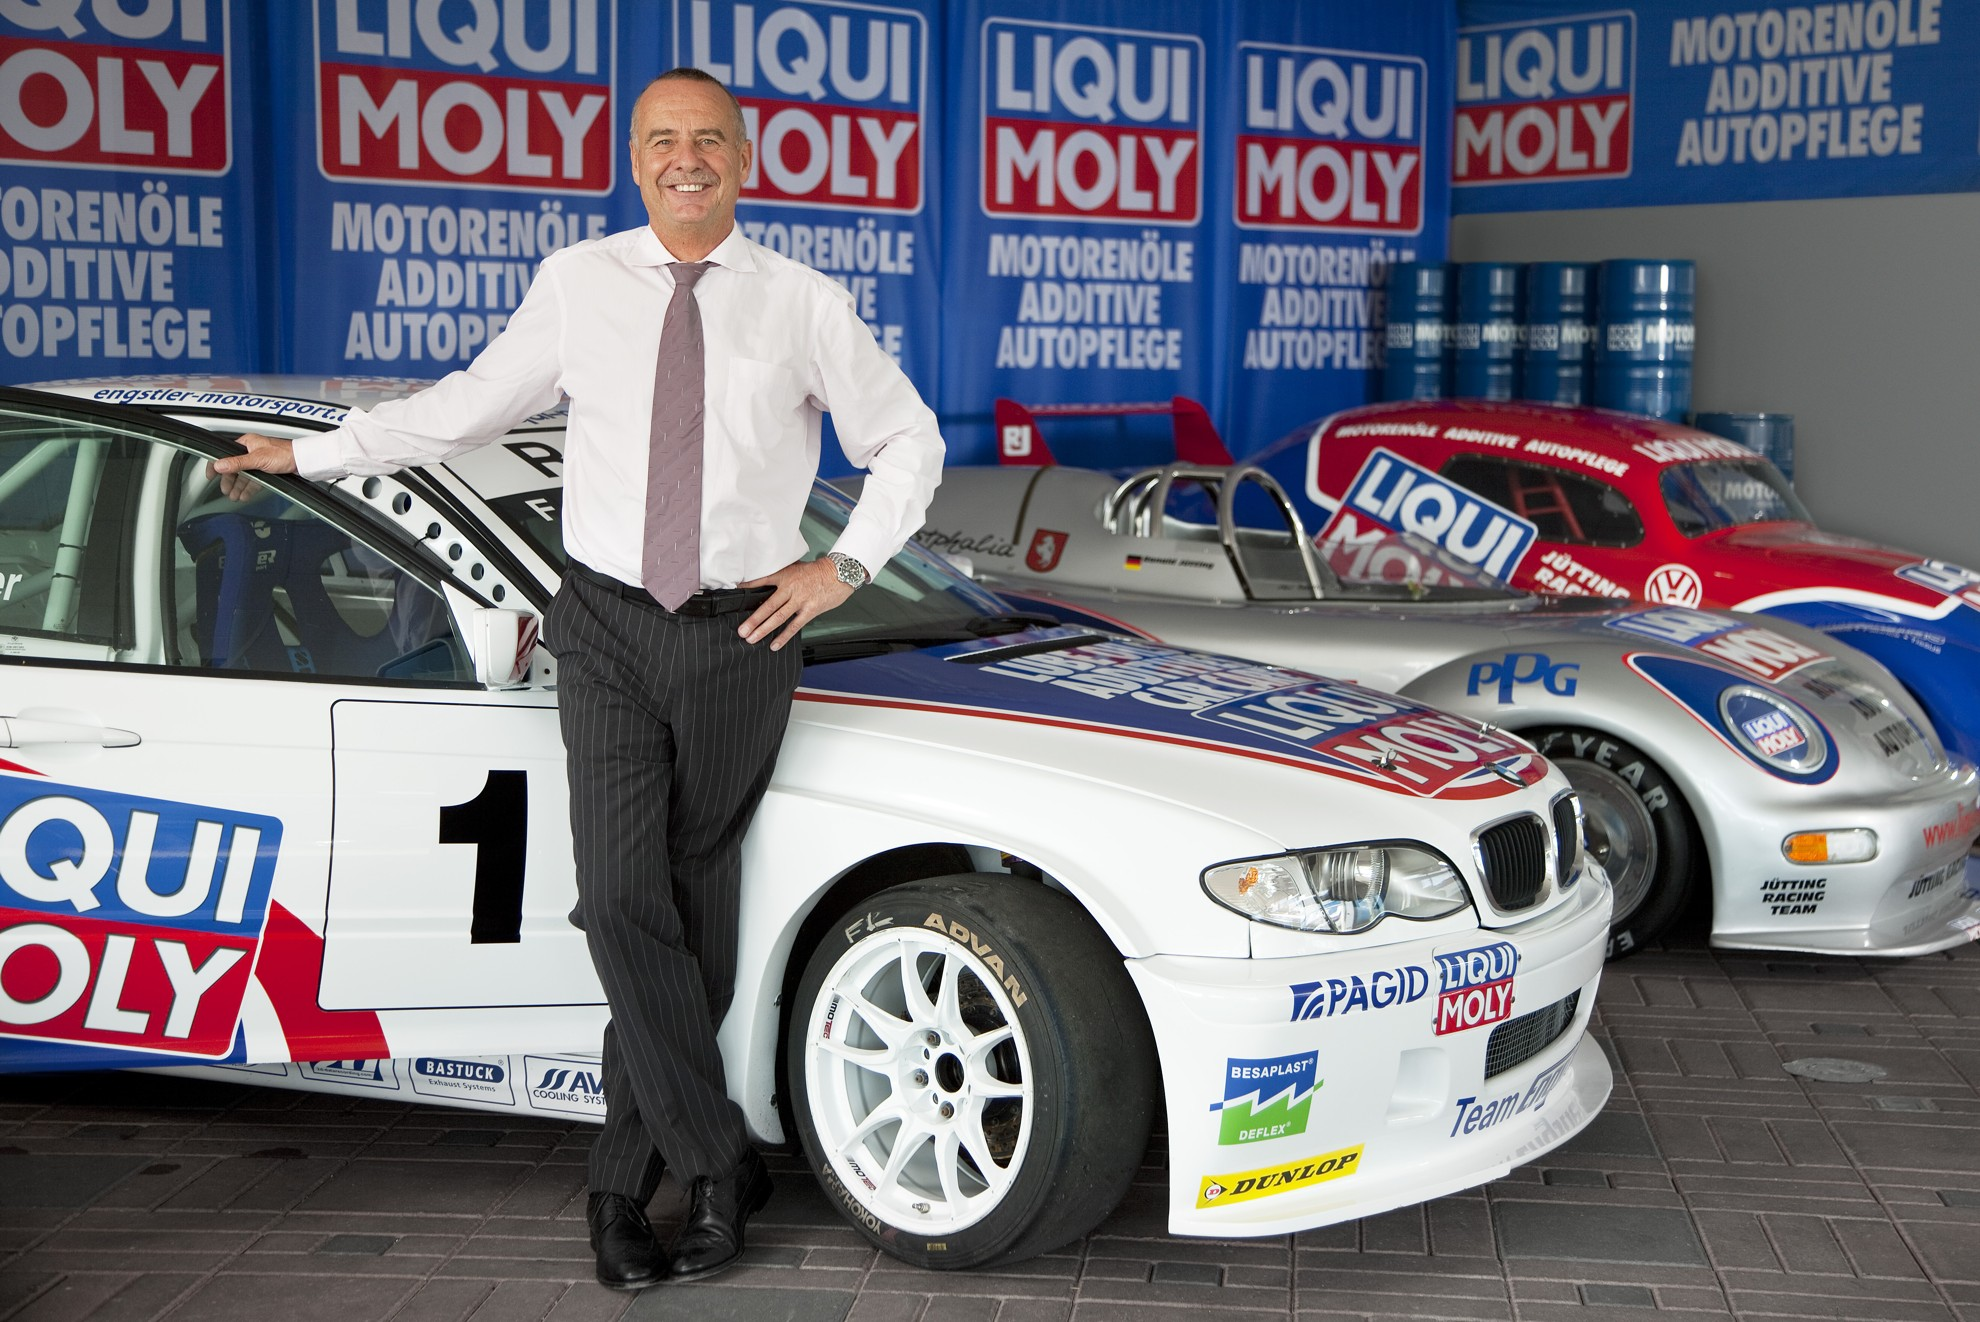 Liqui-Moly-Oil